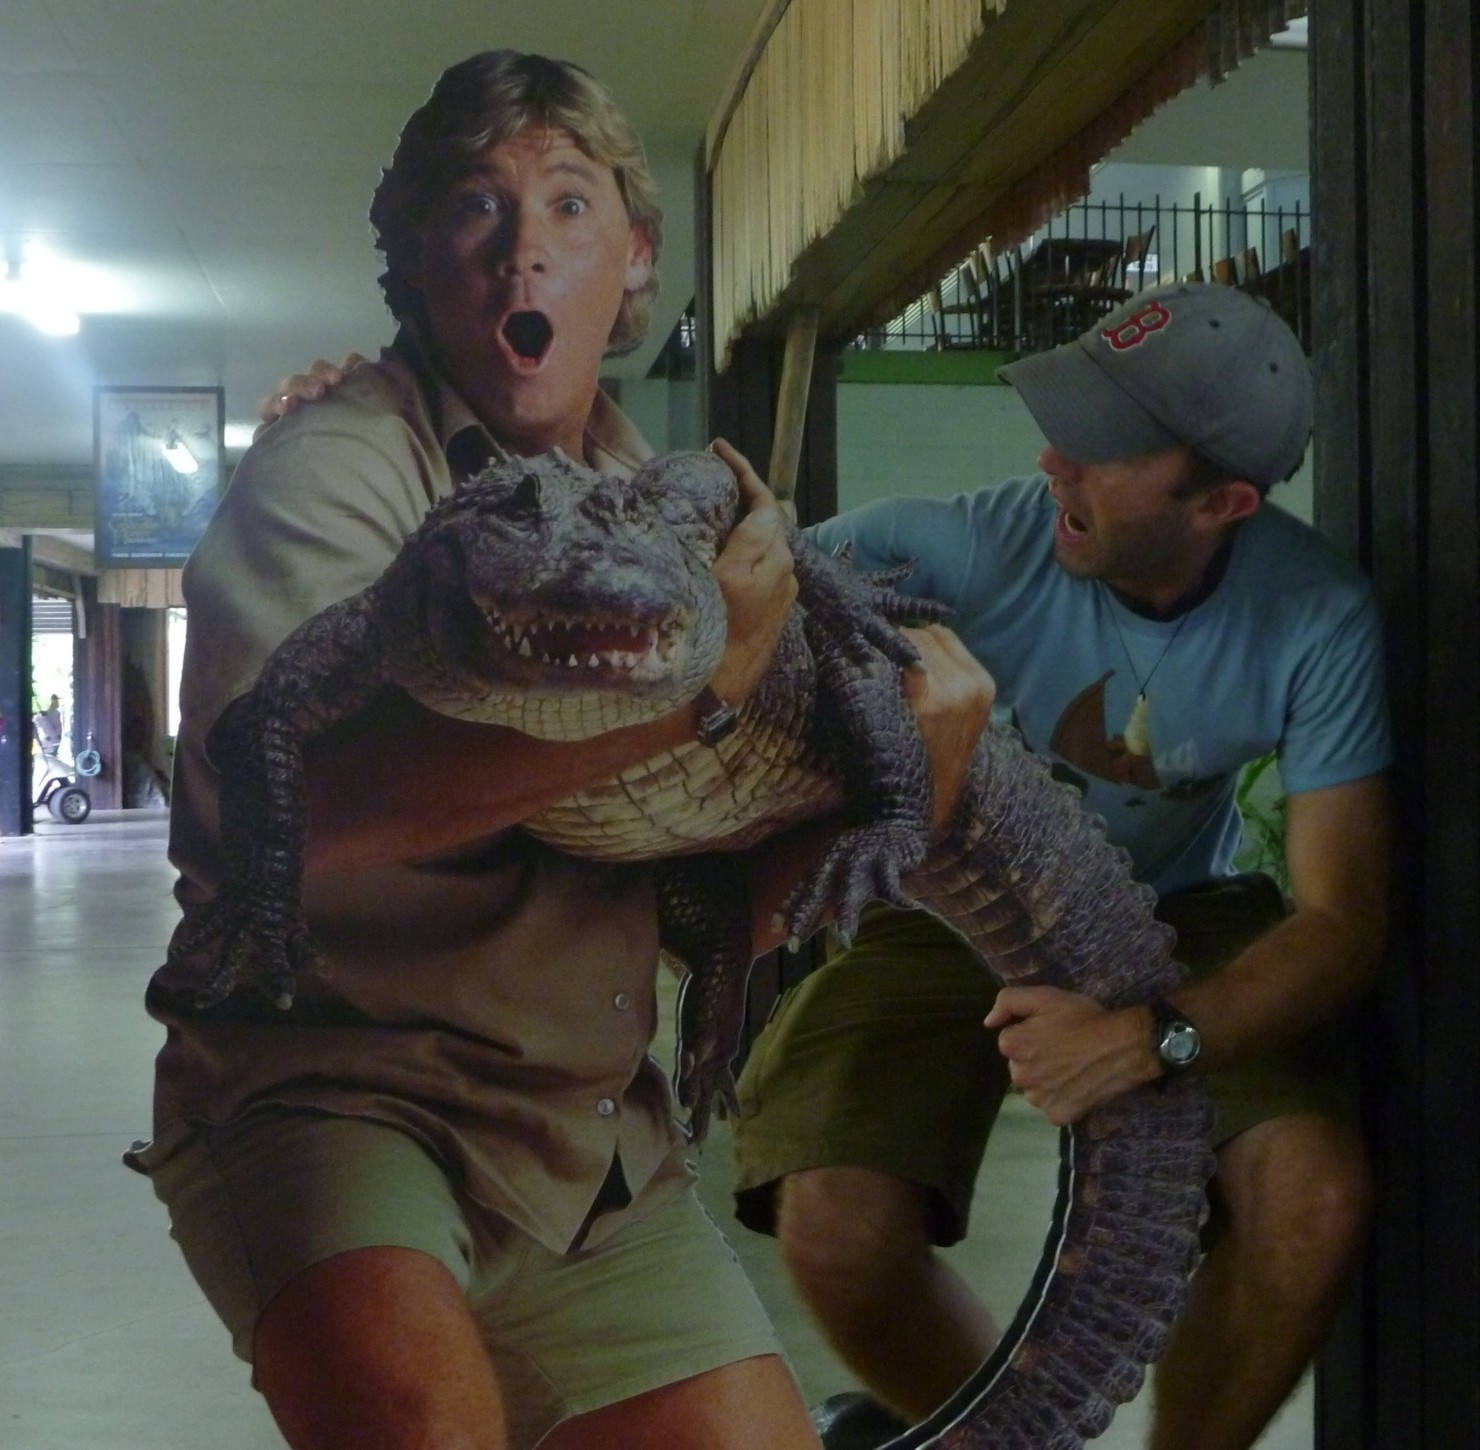 Adrian S Excellent Adventure Crikey A Day At Steve Irwin S Zoo